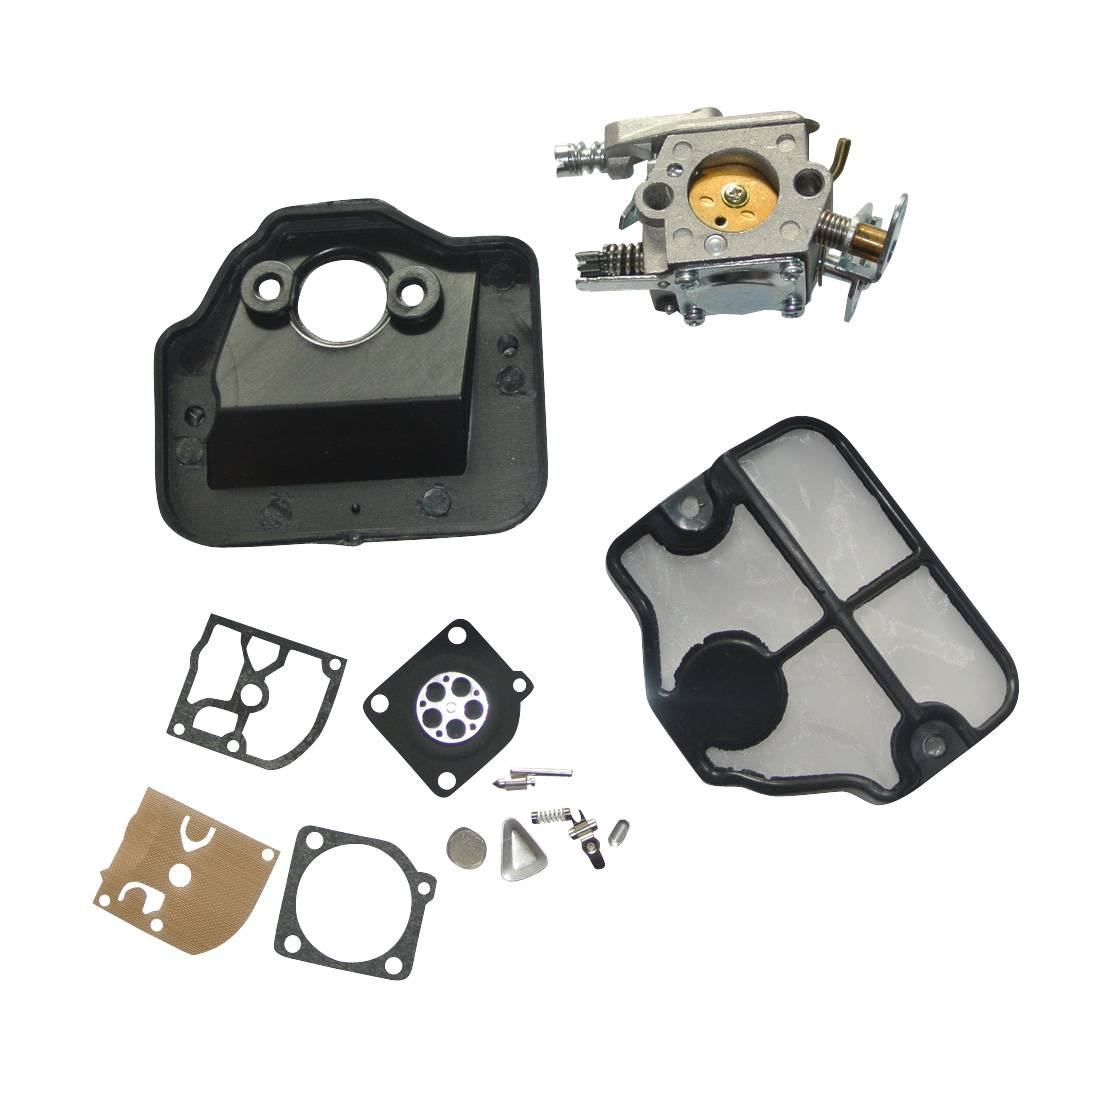 Carburetor Carb Replace Kit For HUSQVARNA 36 41 136 137 141 142 Chainsaw chainsaw module ignition coil wire kit for husqvarna 36 41 136 137 141 142 chainsaw 530039239